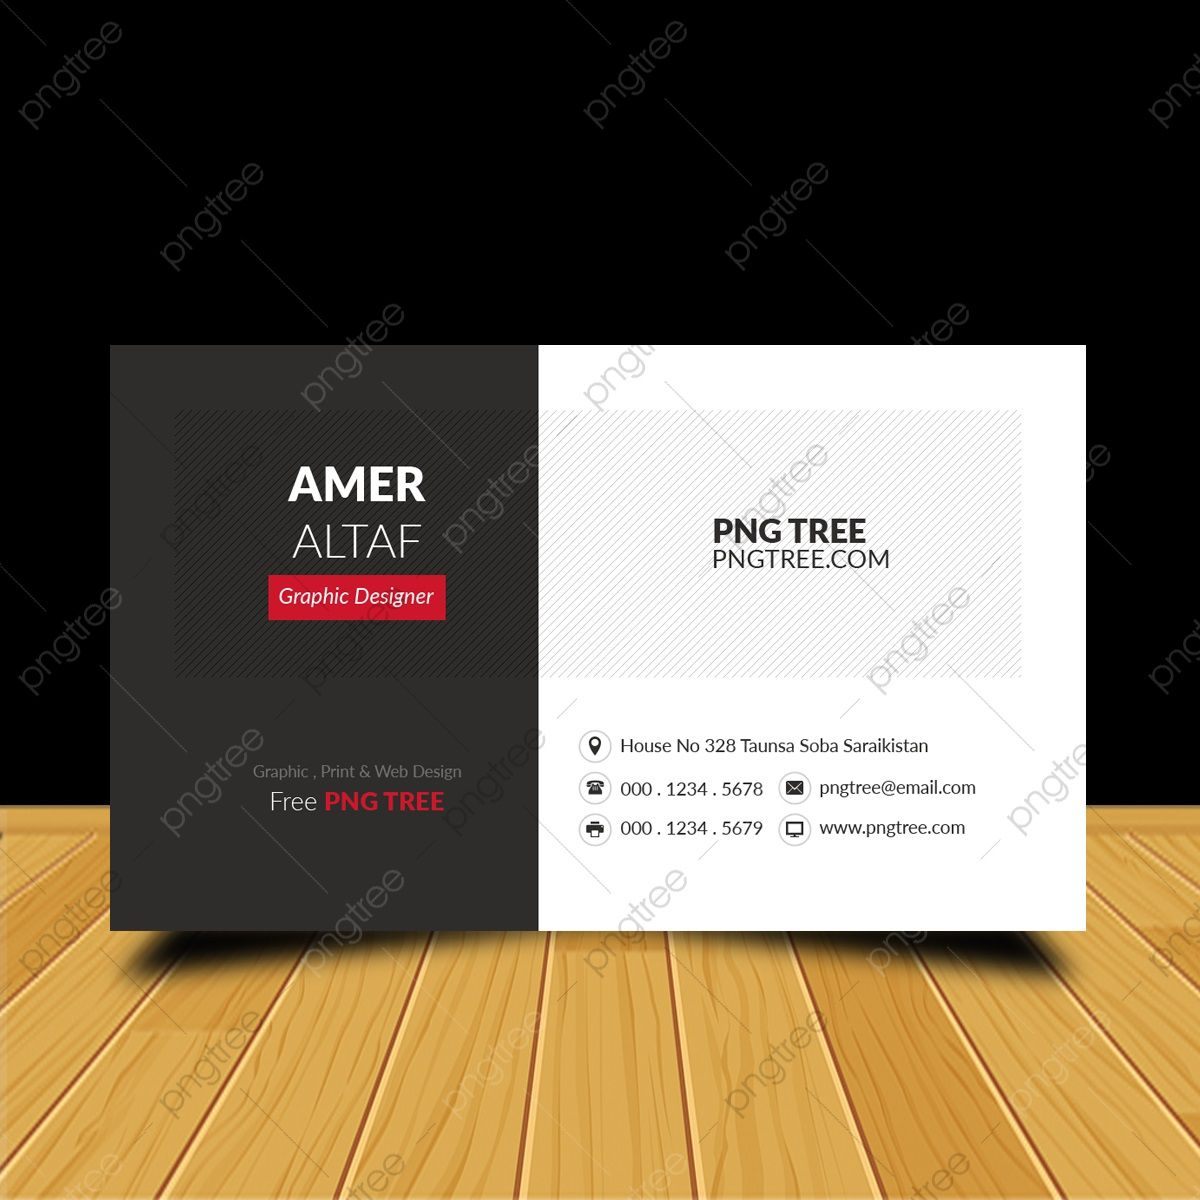 004 Imposing Simple Visiting Card Design Psd Sample  Minimalist Busines Template Free File Download In PhotoshopFull